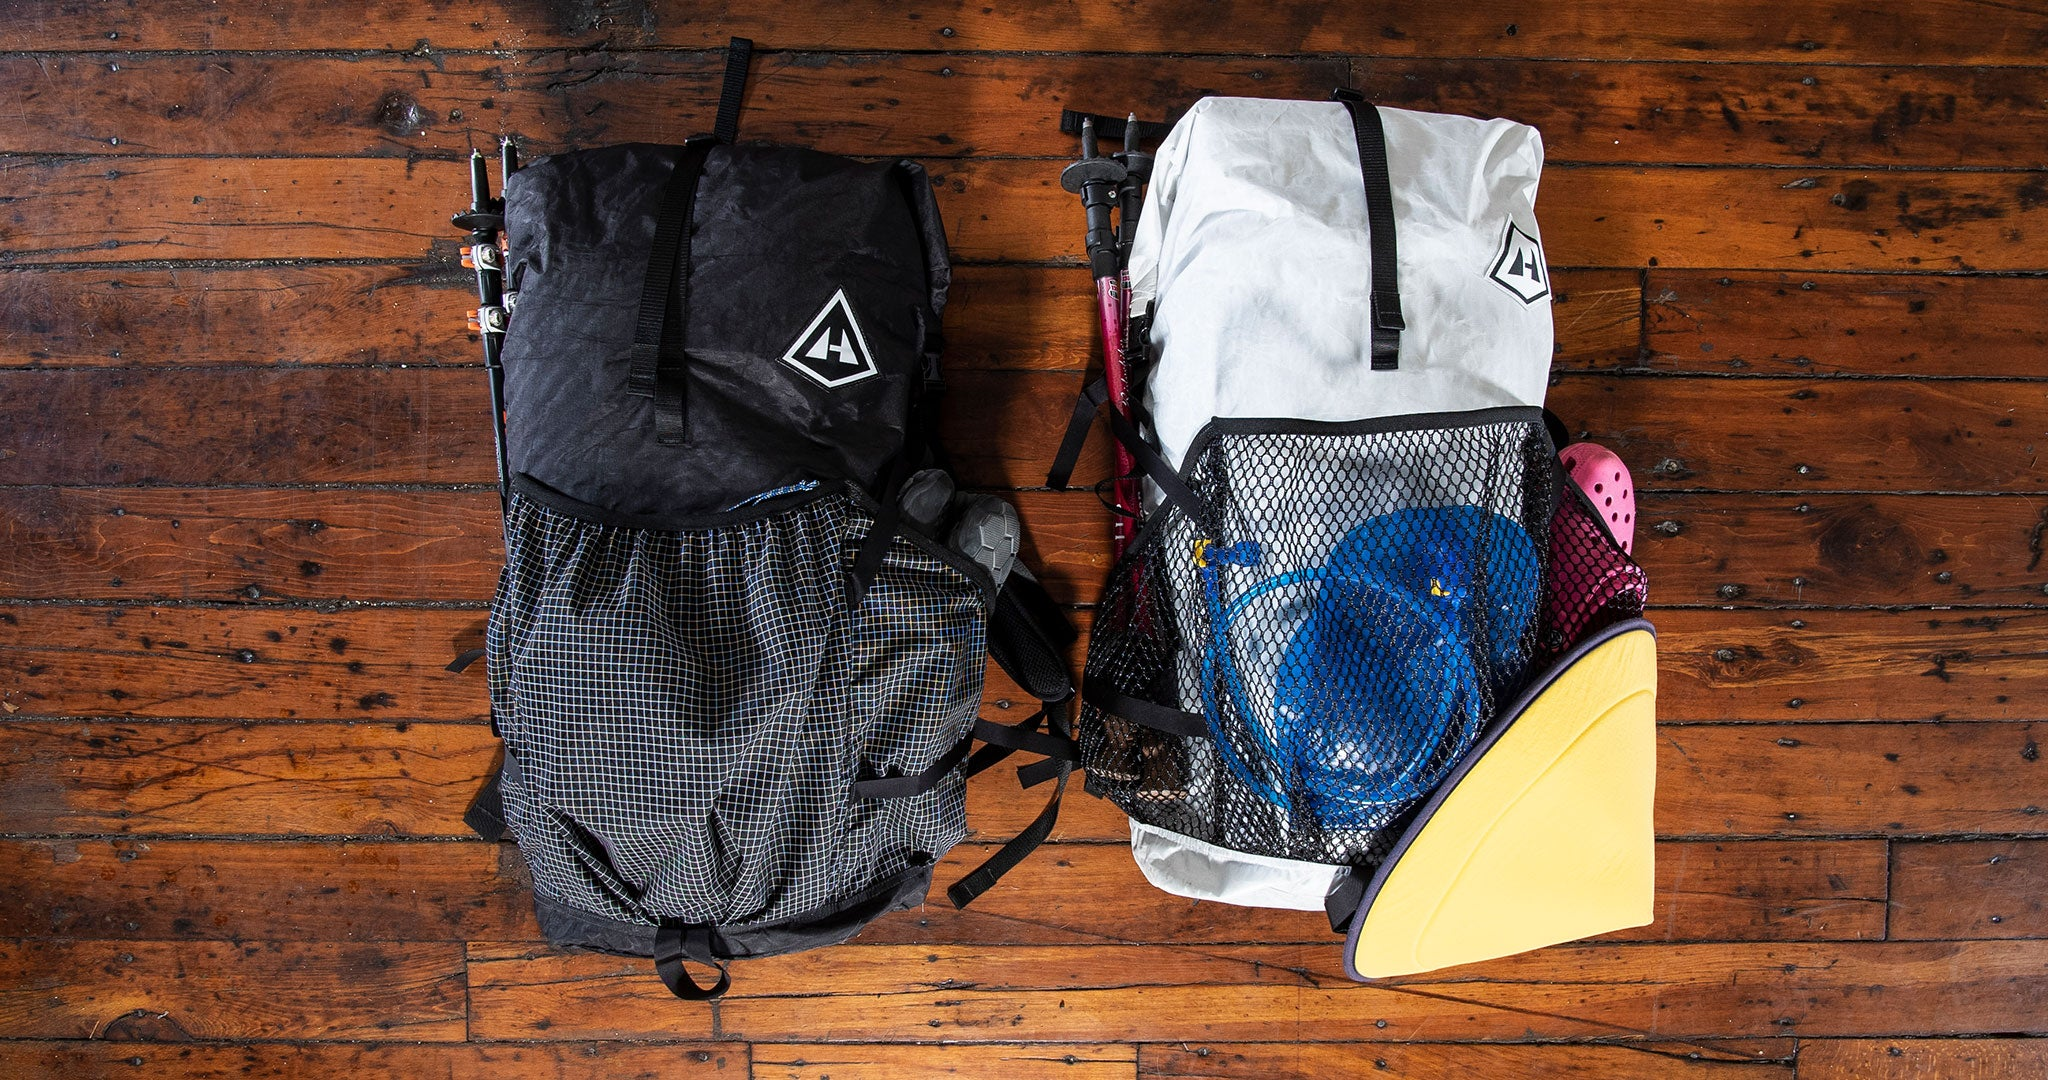 Our Ultralight Appalachian Trail Thru Hike Gear List